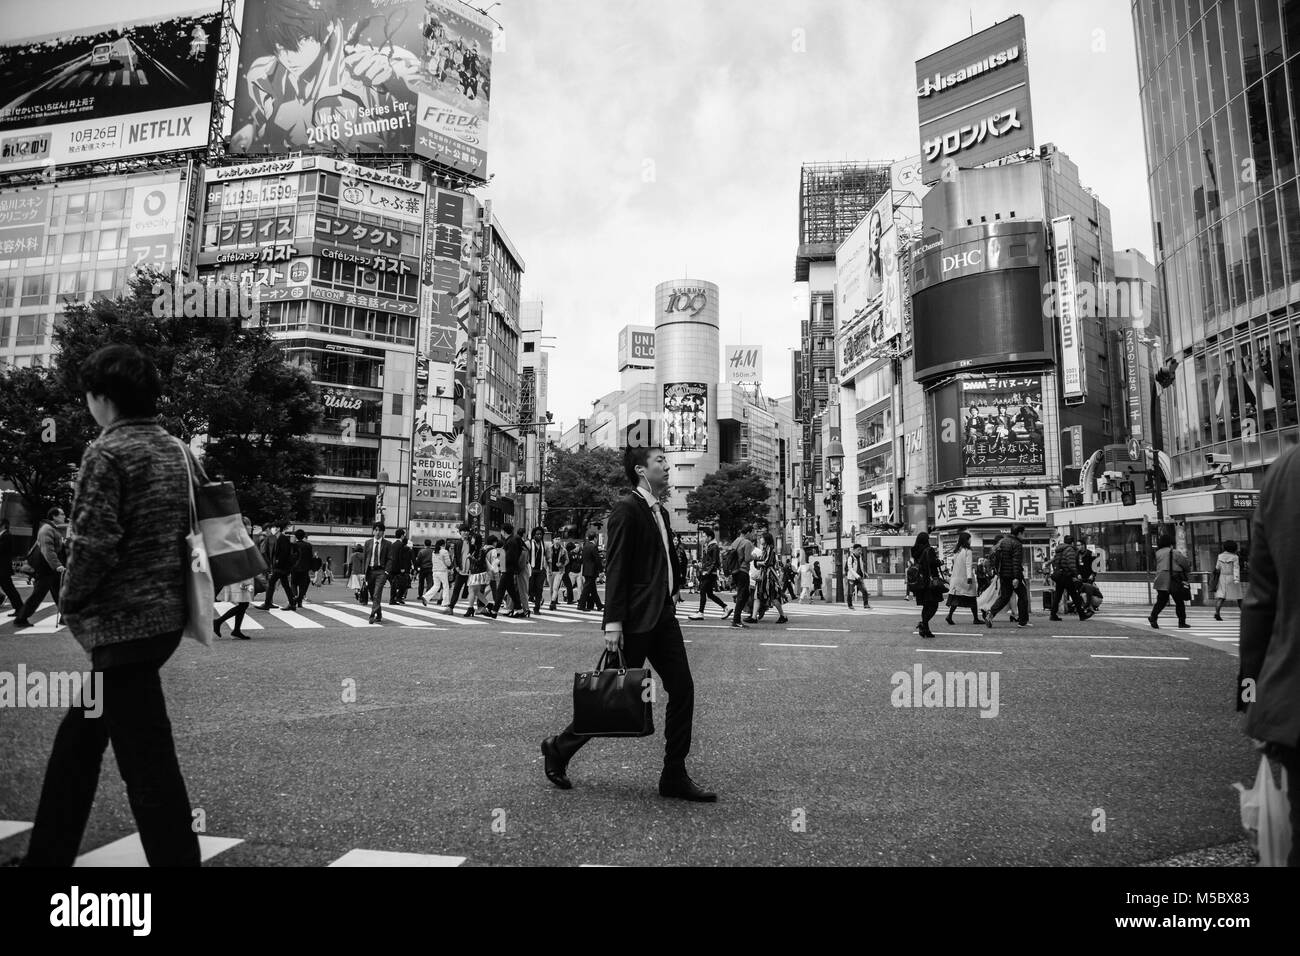 a business man crosses the street in Shibuya, Tokyo - Stock Image